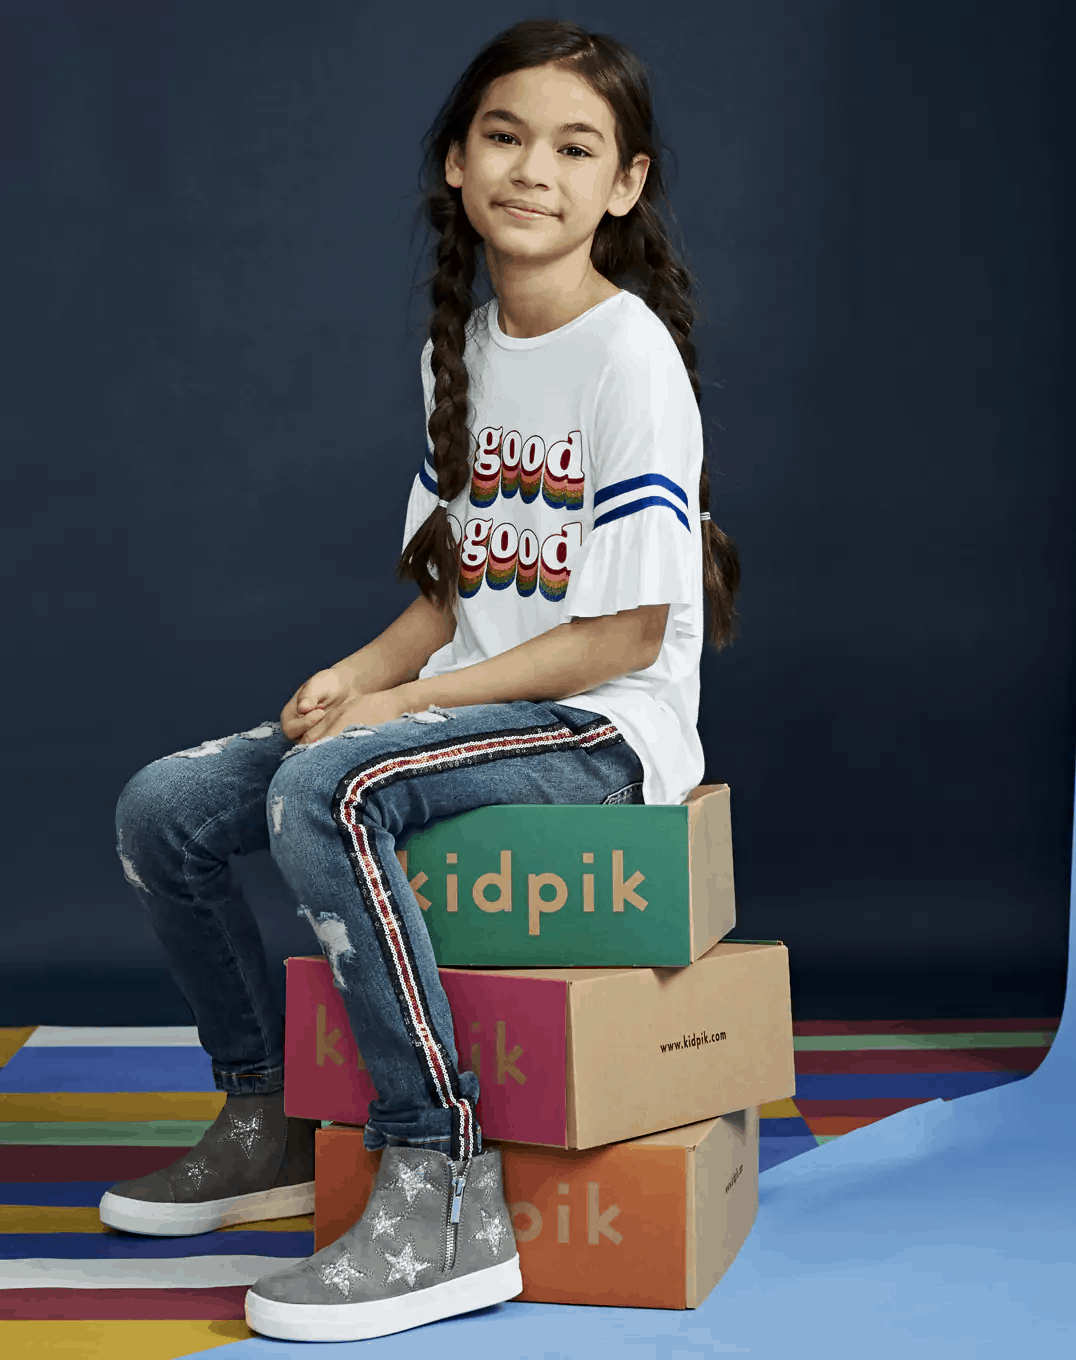 Kidpik Labor Day Sale: Get $25 Off!